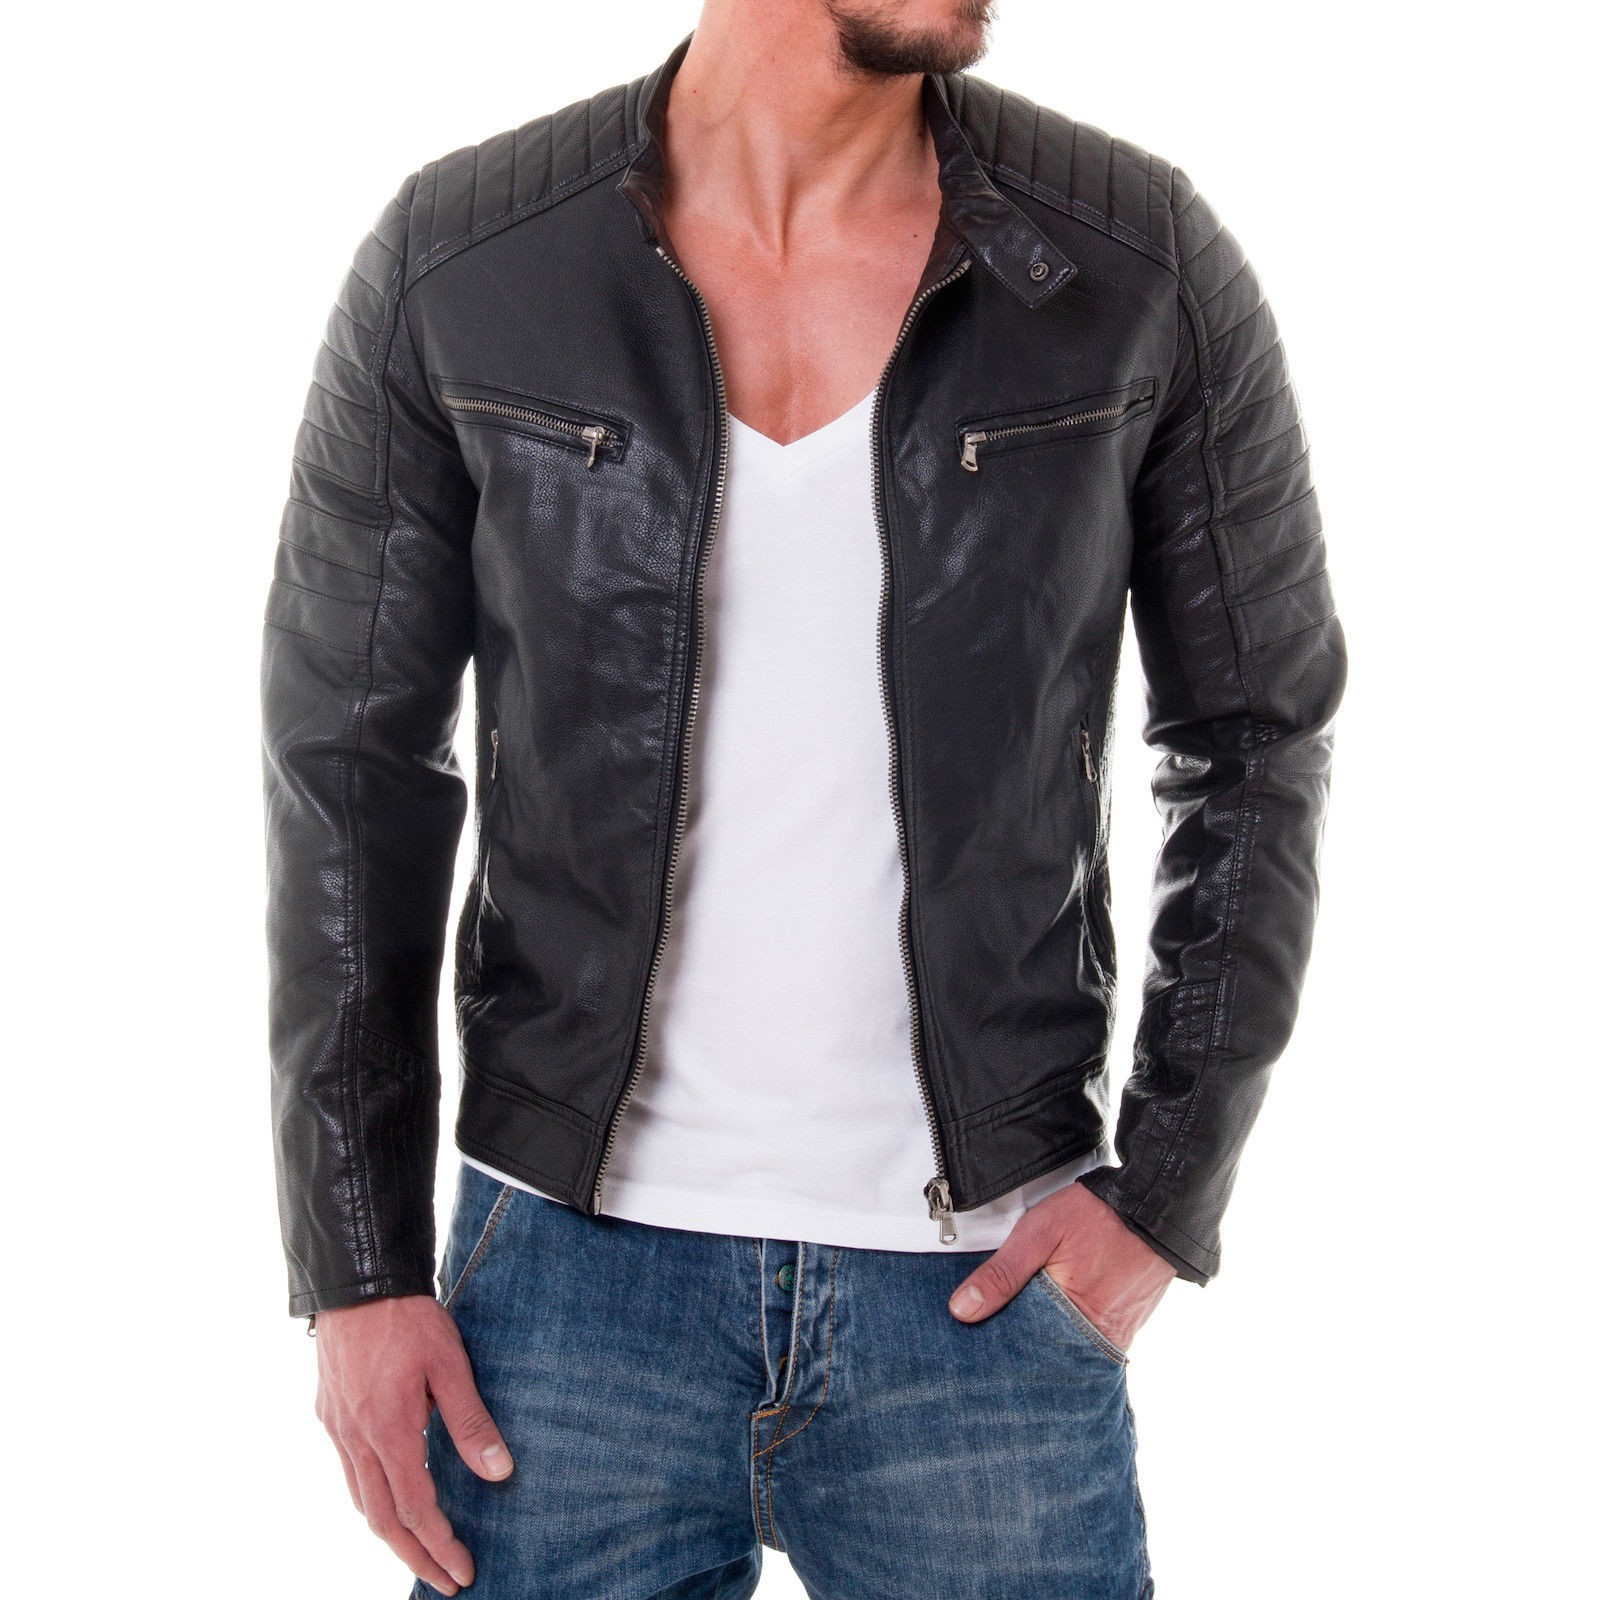 bonai 005 herren biker jacke gesteppt pu kunst lederjacke schwarz club party ebay. Black Bedroom Furniture Sets. Home Design Ideas